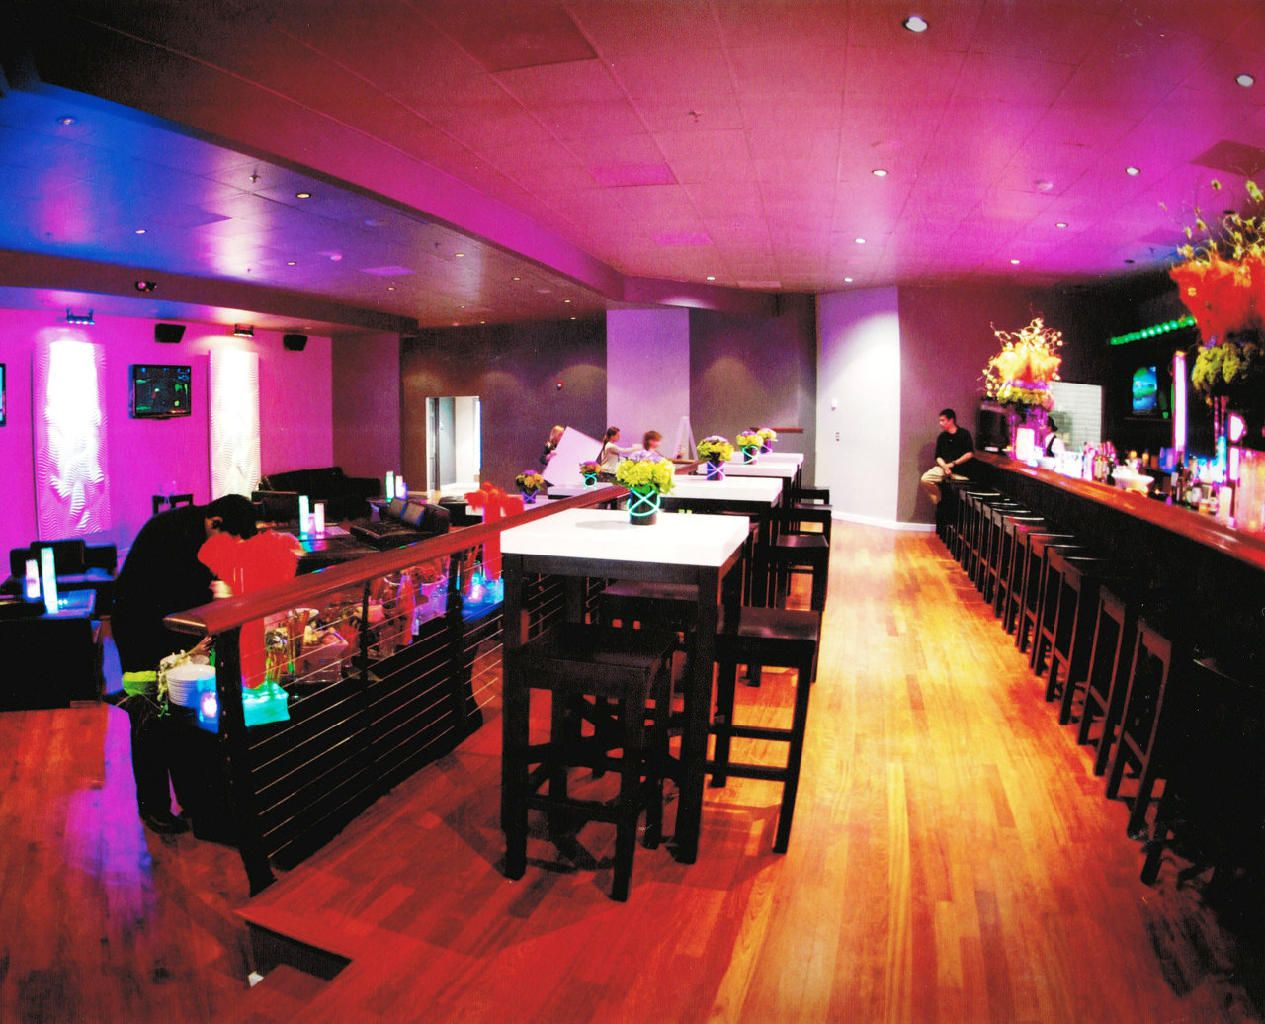 Vibe, New Jersey's Premier Event Space